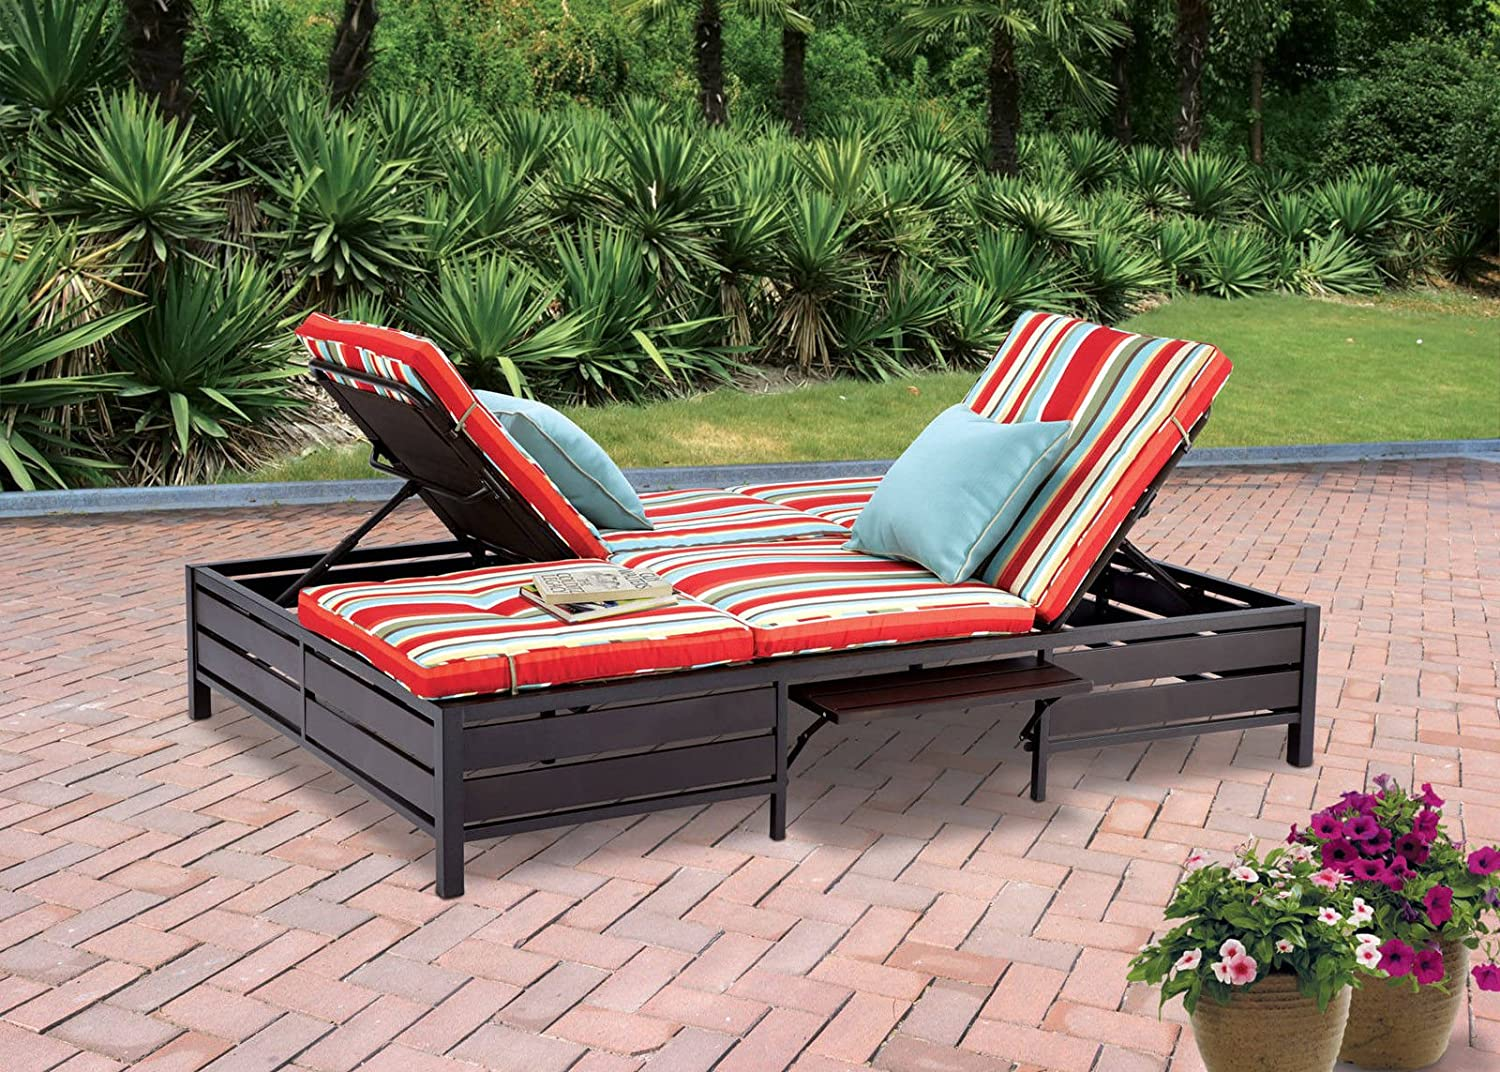 Bon Amazon.com : Double Chaise Lounger   This Red Stripe Outdoor Chaise Lounge  Is Comfortable Sun Patio Furniture Guaranteed Which Can Also Be Used In  Your ...